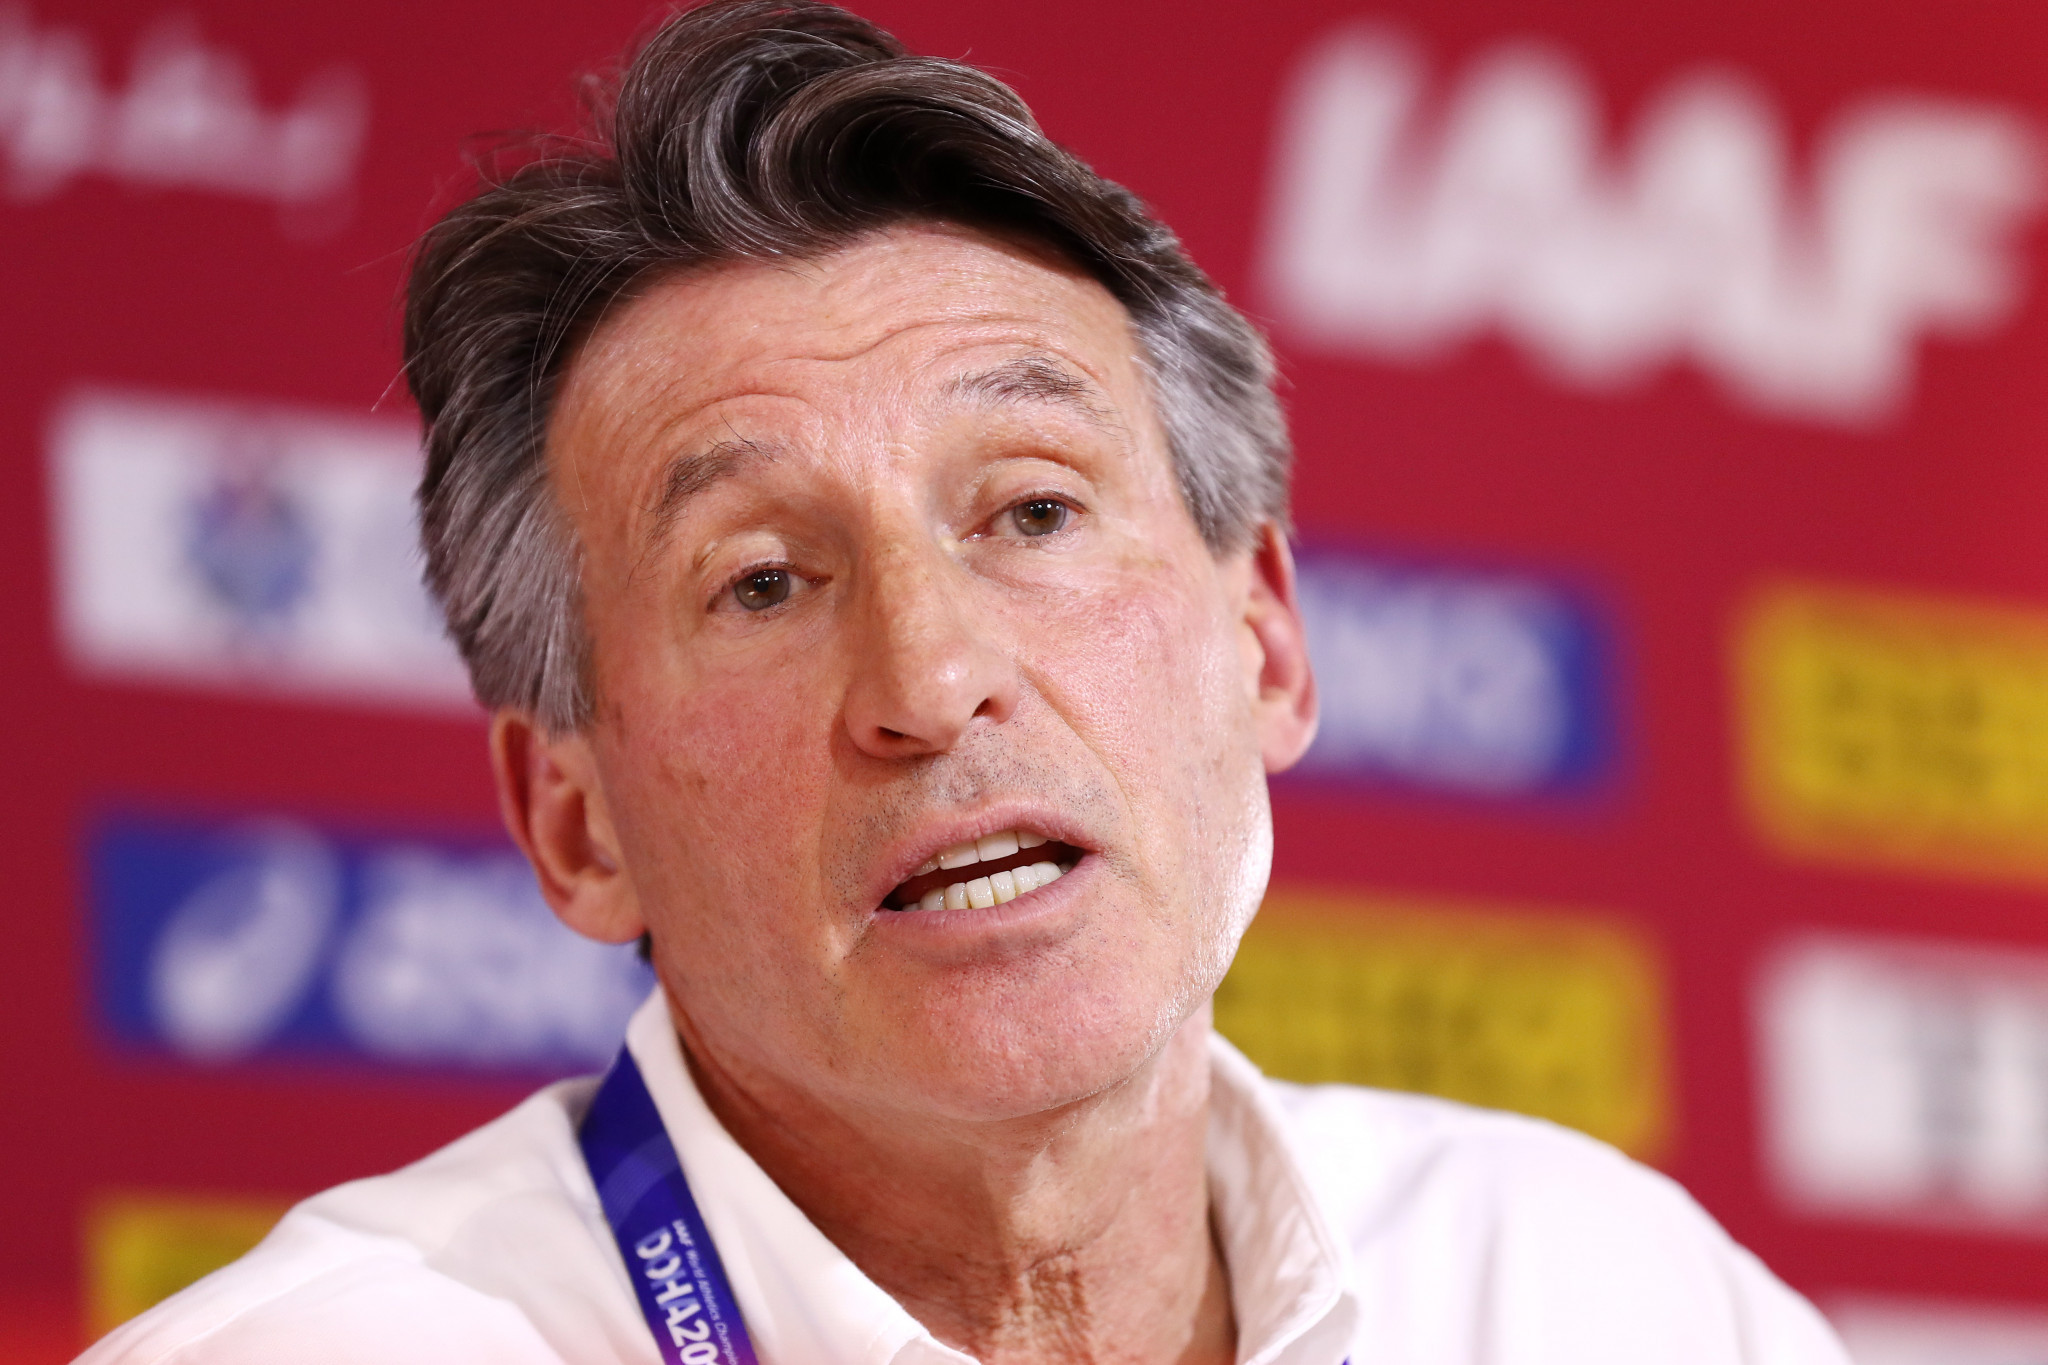 """World Athletics President Sebastian Coe has said Russian track and field athletes will not be admitted to compete at next year's Olympic Games in Tokyo unless he is """"absolutely comfortable"""" they are drug-free ©Getty Images"""